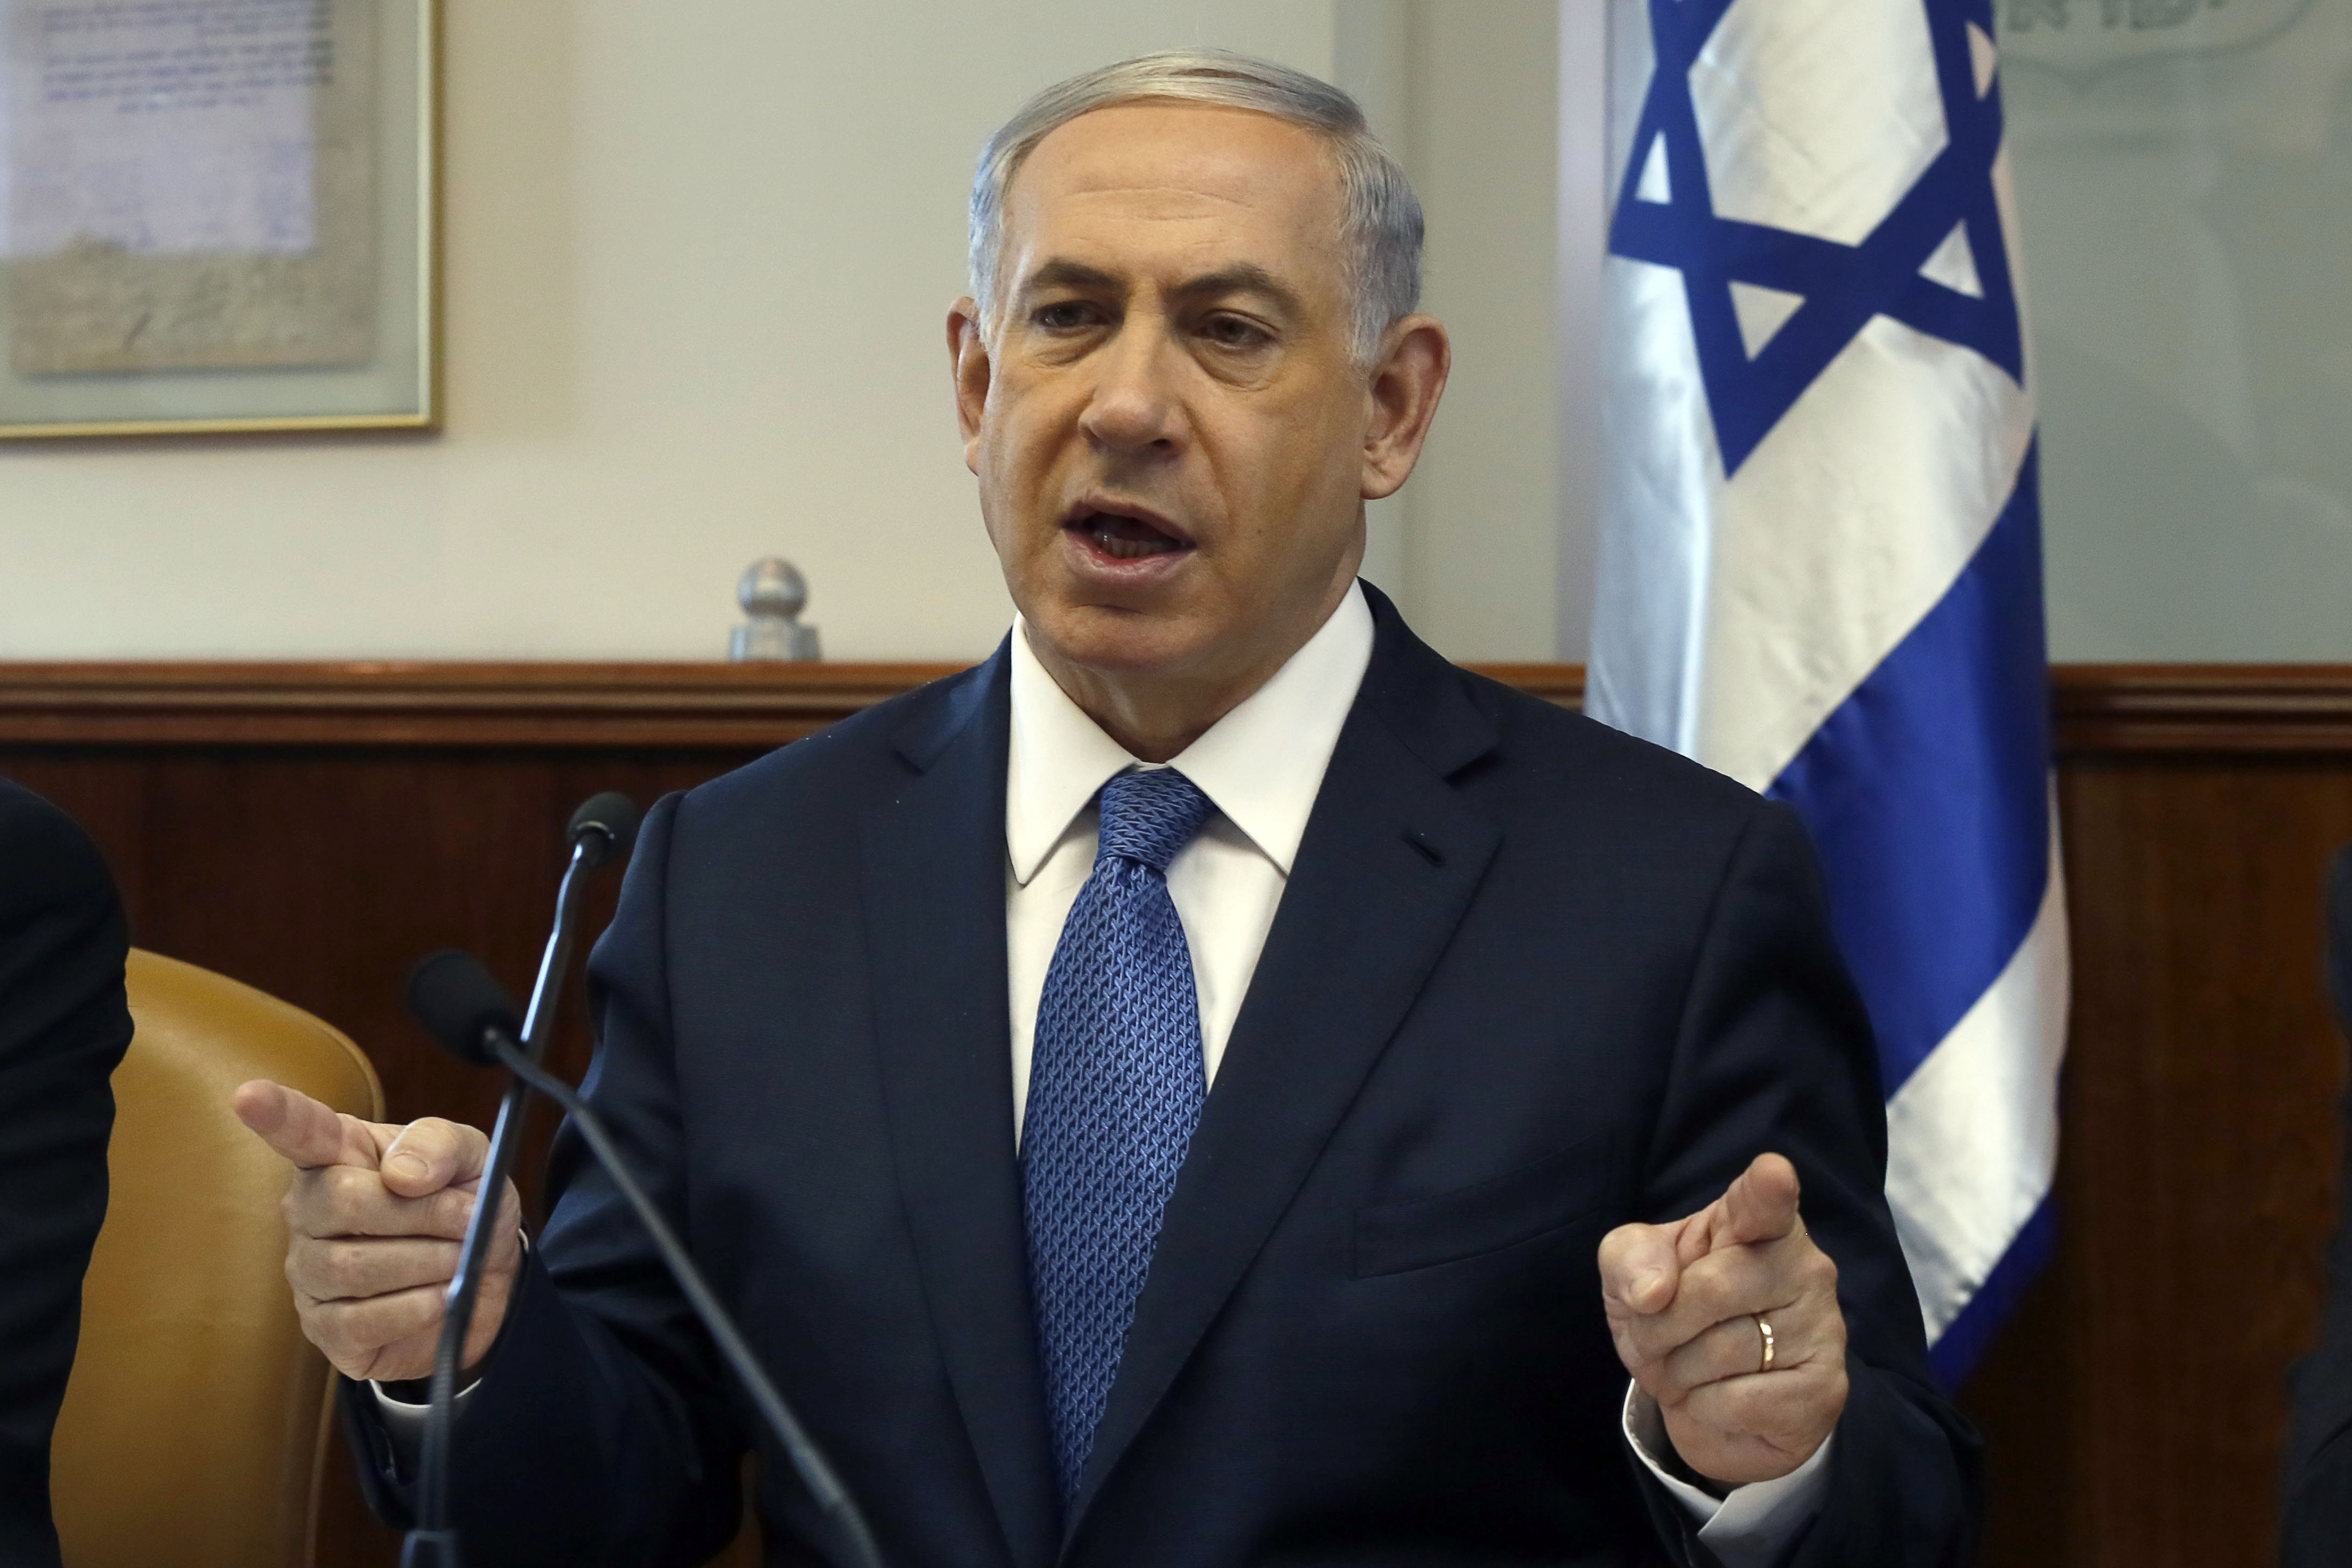 Israel's Prime Minister Benjamin Netanyahu is trying to reach younger voters.